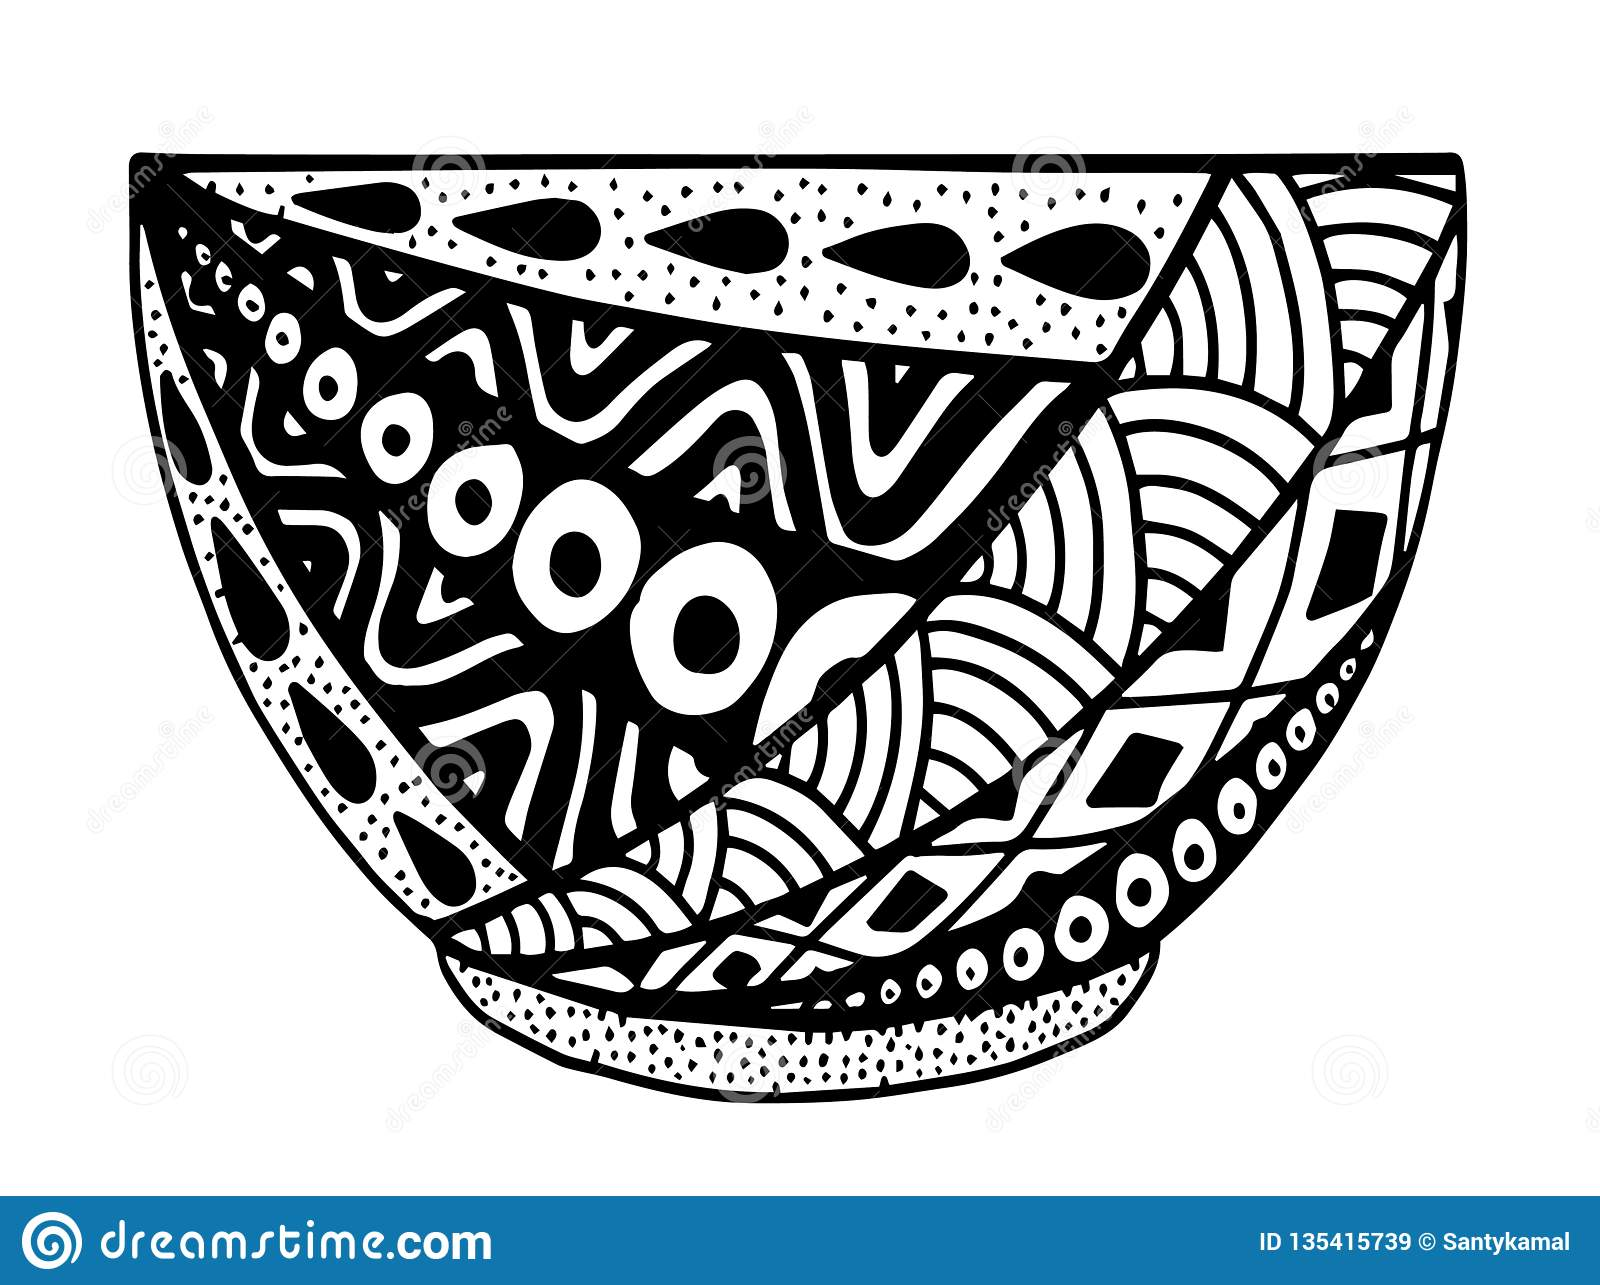 Black and white vector hand drawn bowl, doodle style illustration with ornament